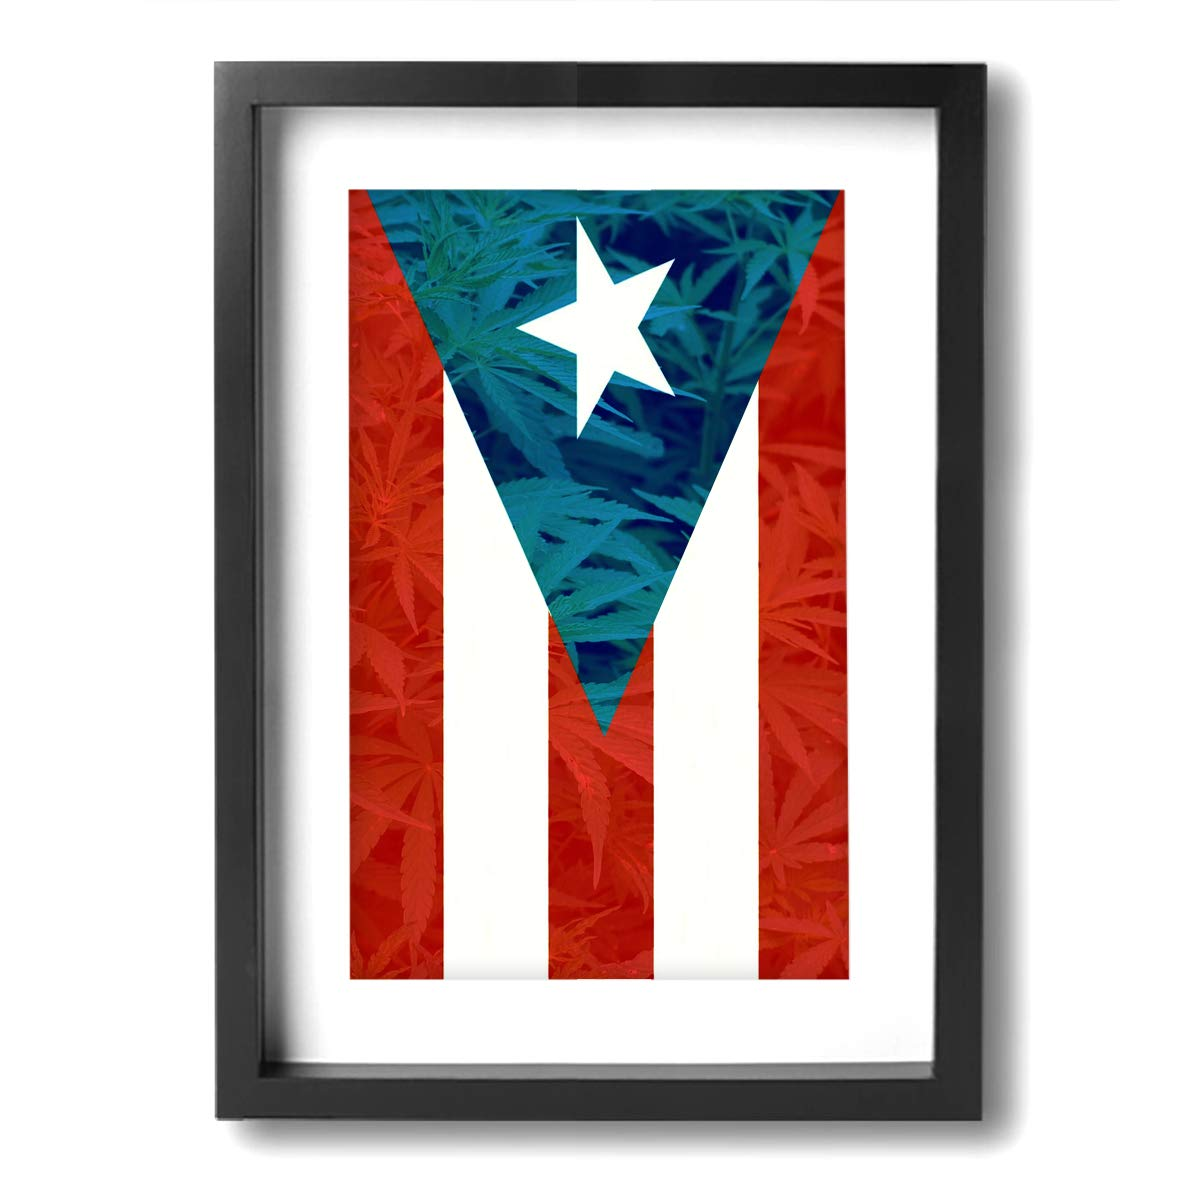 Chen Wen Jie Puerto Rico Flag Modern Giclee Framed Canvas Prints Artwork Paintings On Canvas Wall Art for Home Decorations Wall Decor